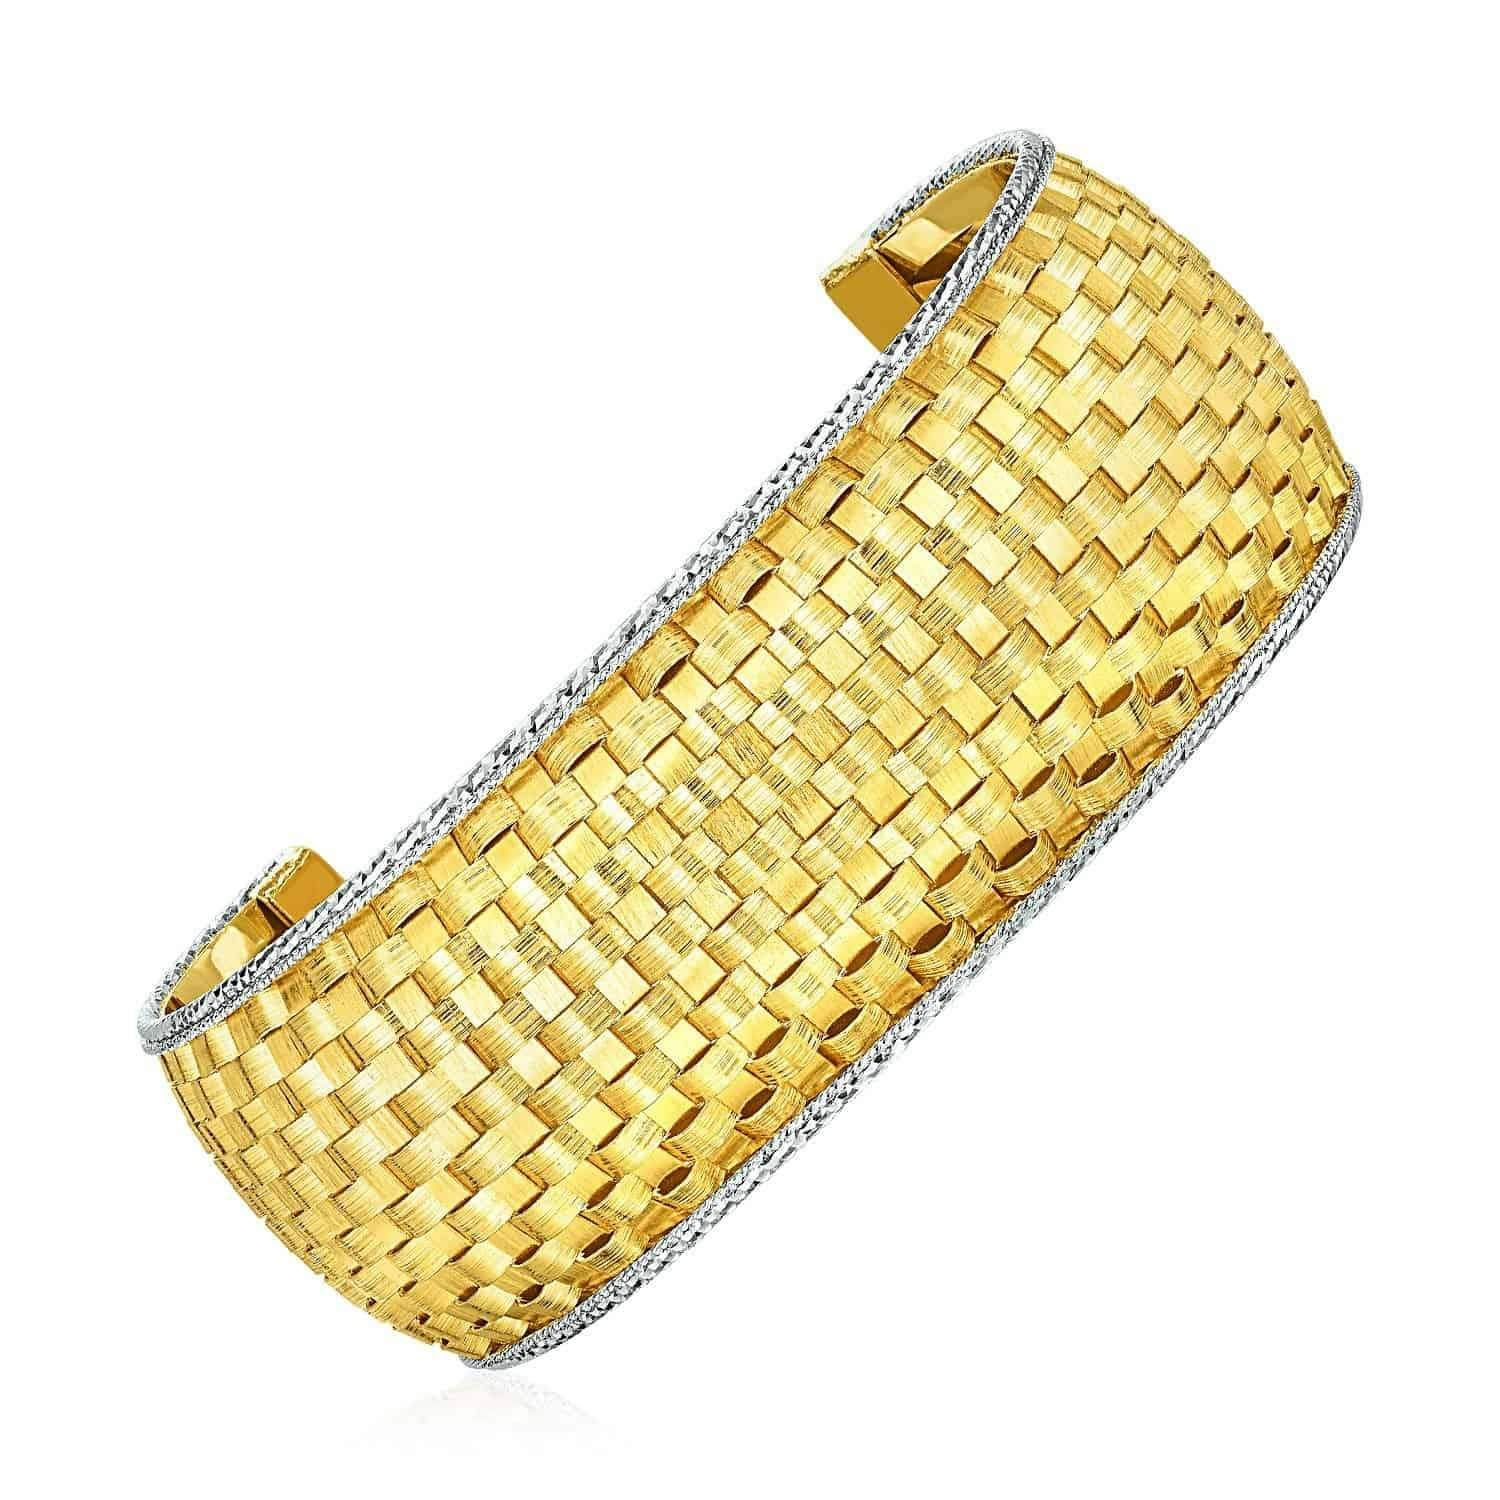 e7f323e596cba Wide Cuff Bangle with Basket Weave Texture in 14k Yellow and White ...